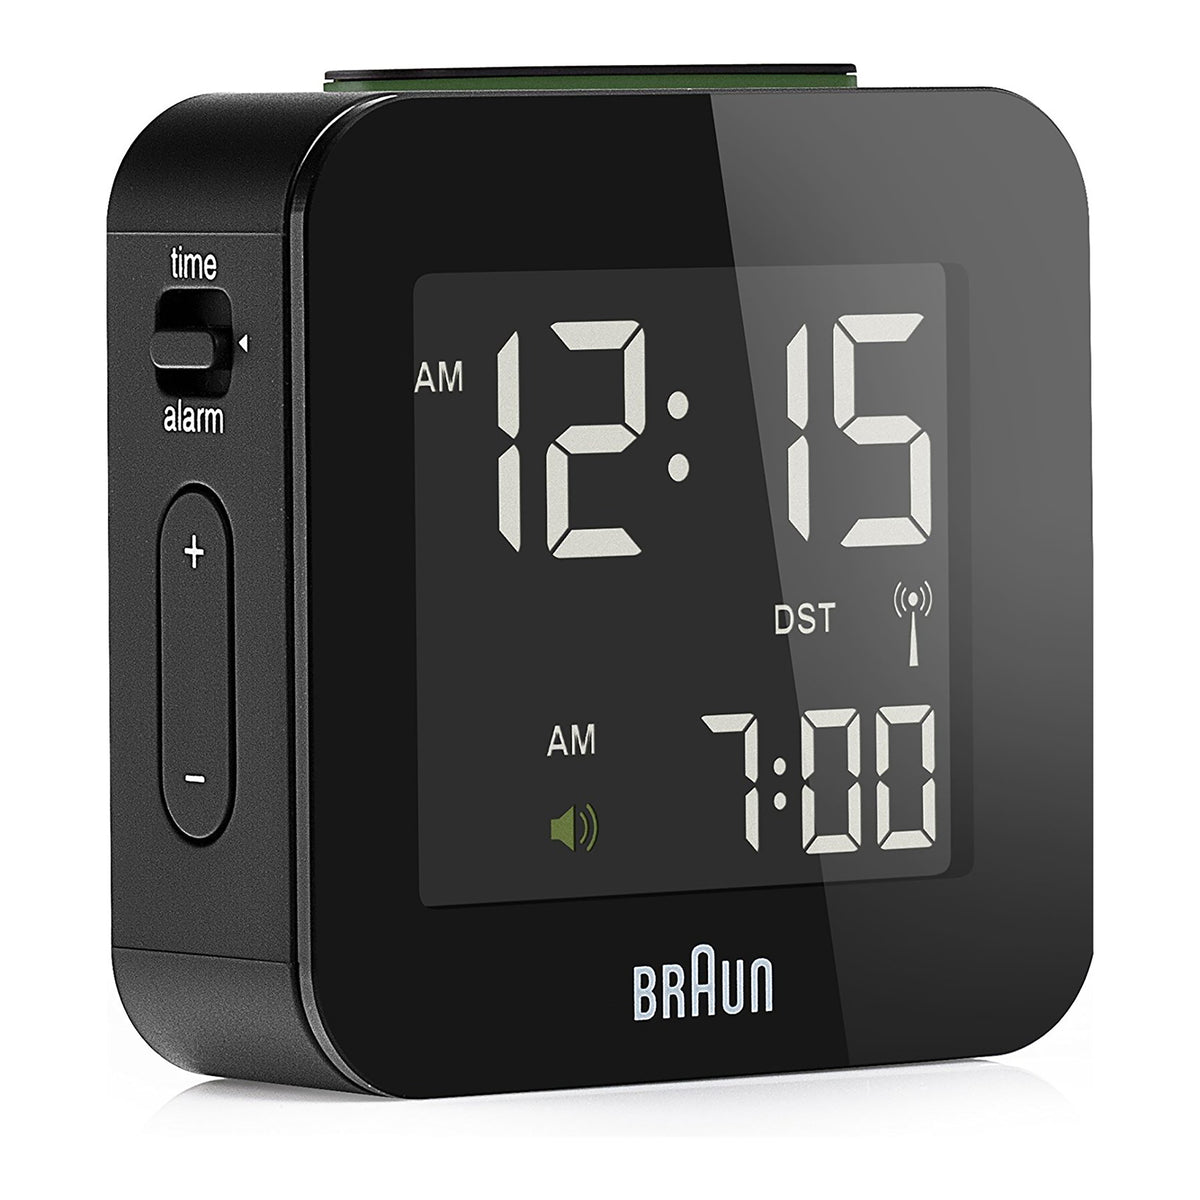 Braun: Digital Travel Alarm Clock - Black (BN-C008BK-RC)